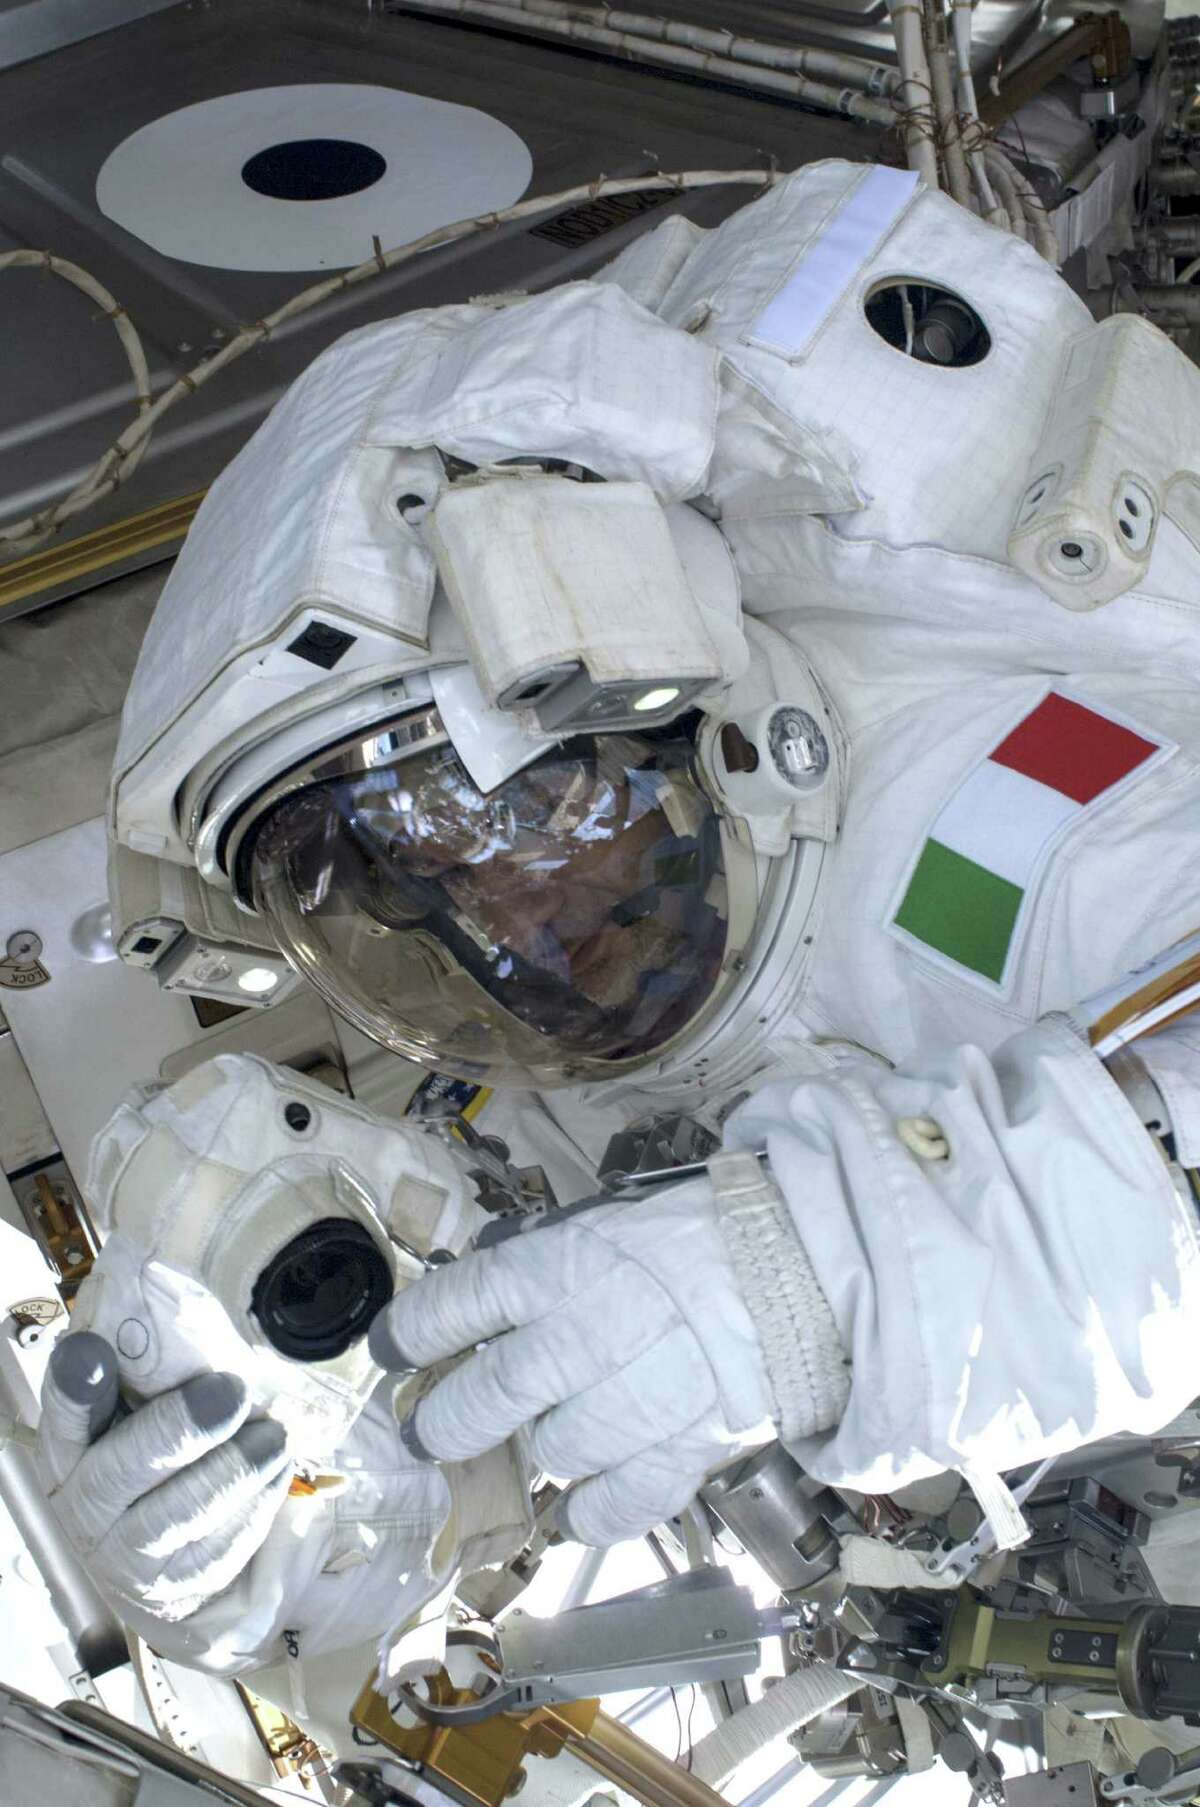 European Space Agency astronaut Luca Parmitano, Expedition 36 flight engineer, participates in a spacewalk at the International Space Station in July. Fresh jockeying on Capitol Hill over NASA's destination and spending is complicating planning for NASA's future.